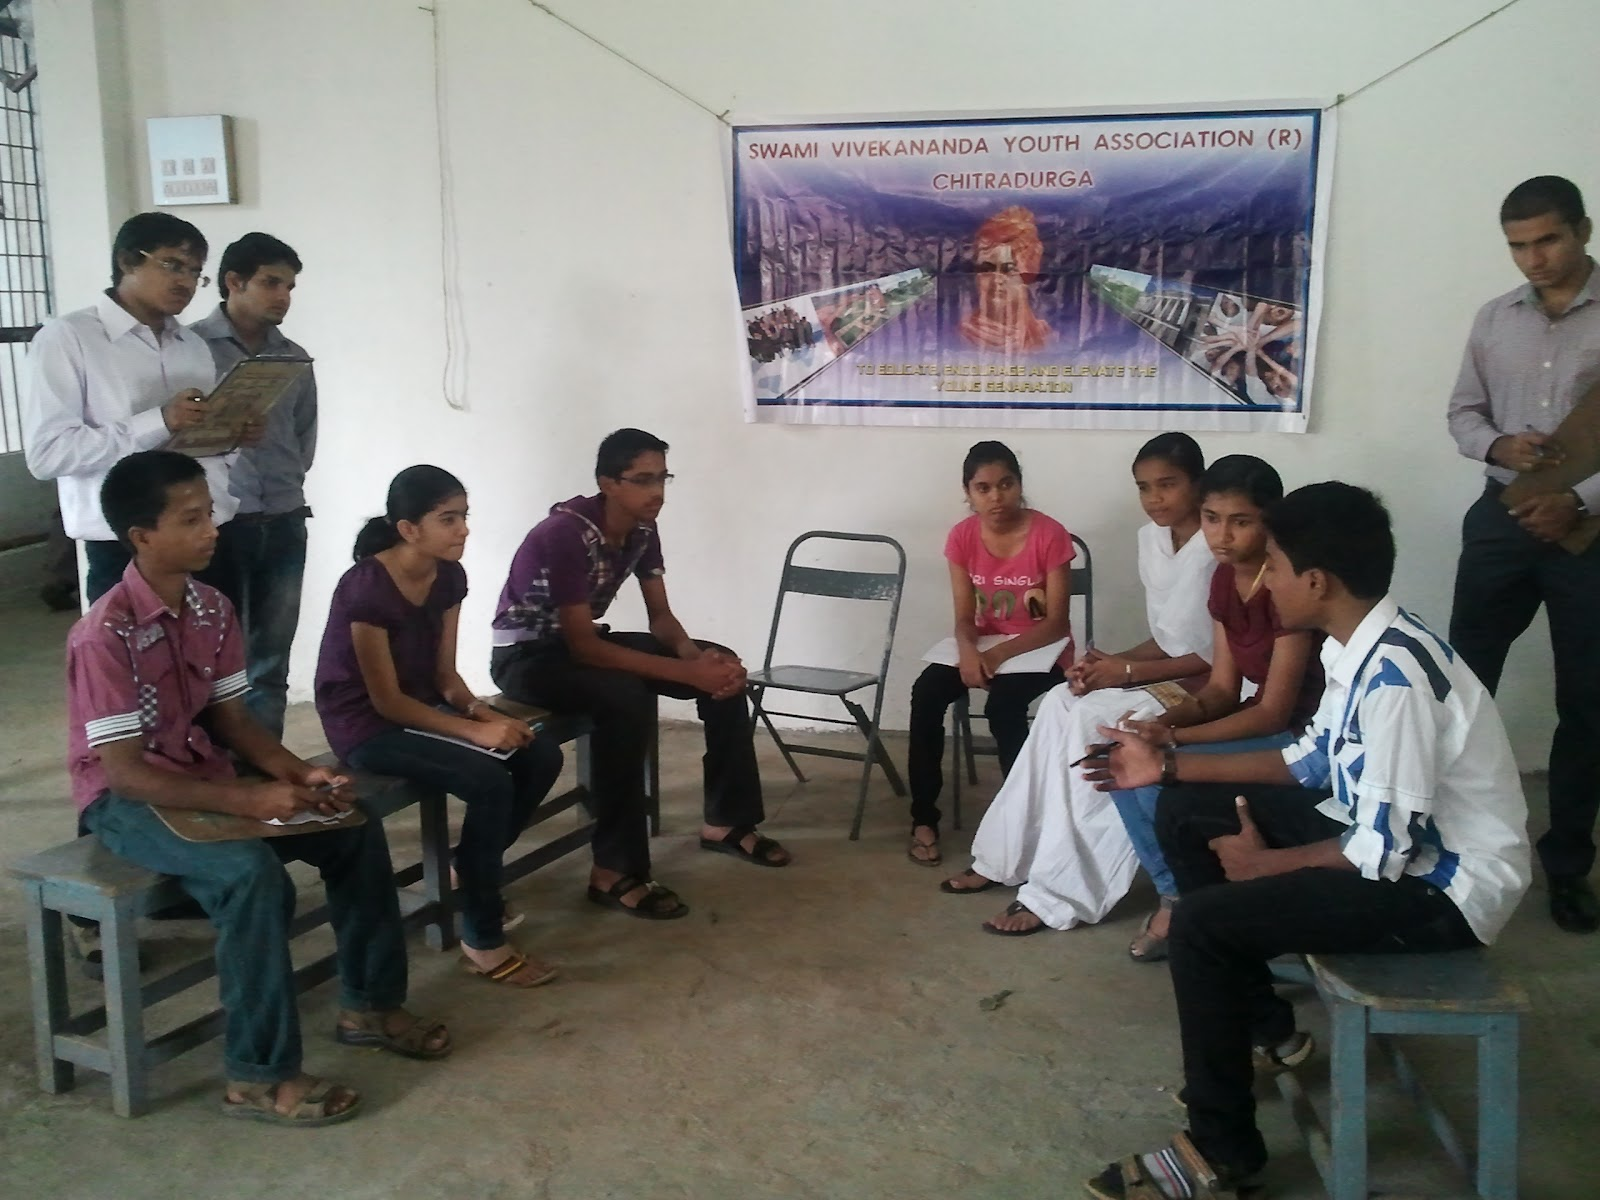 swami vivekananda youth association training regarding the group swami vivekananda youth association training regarding the group discussion personal interview for the high school students